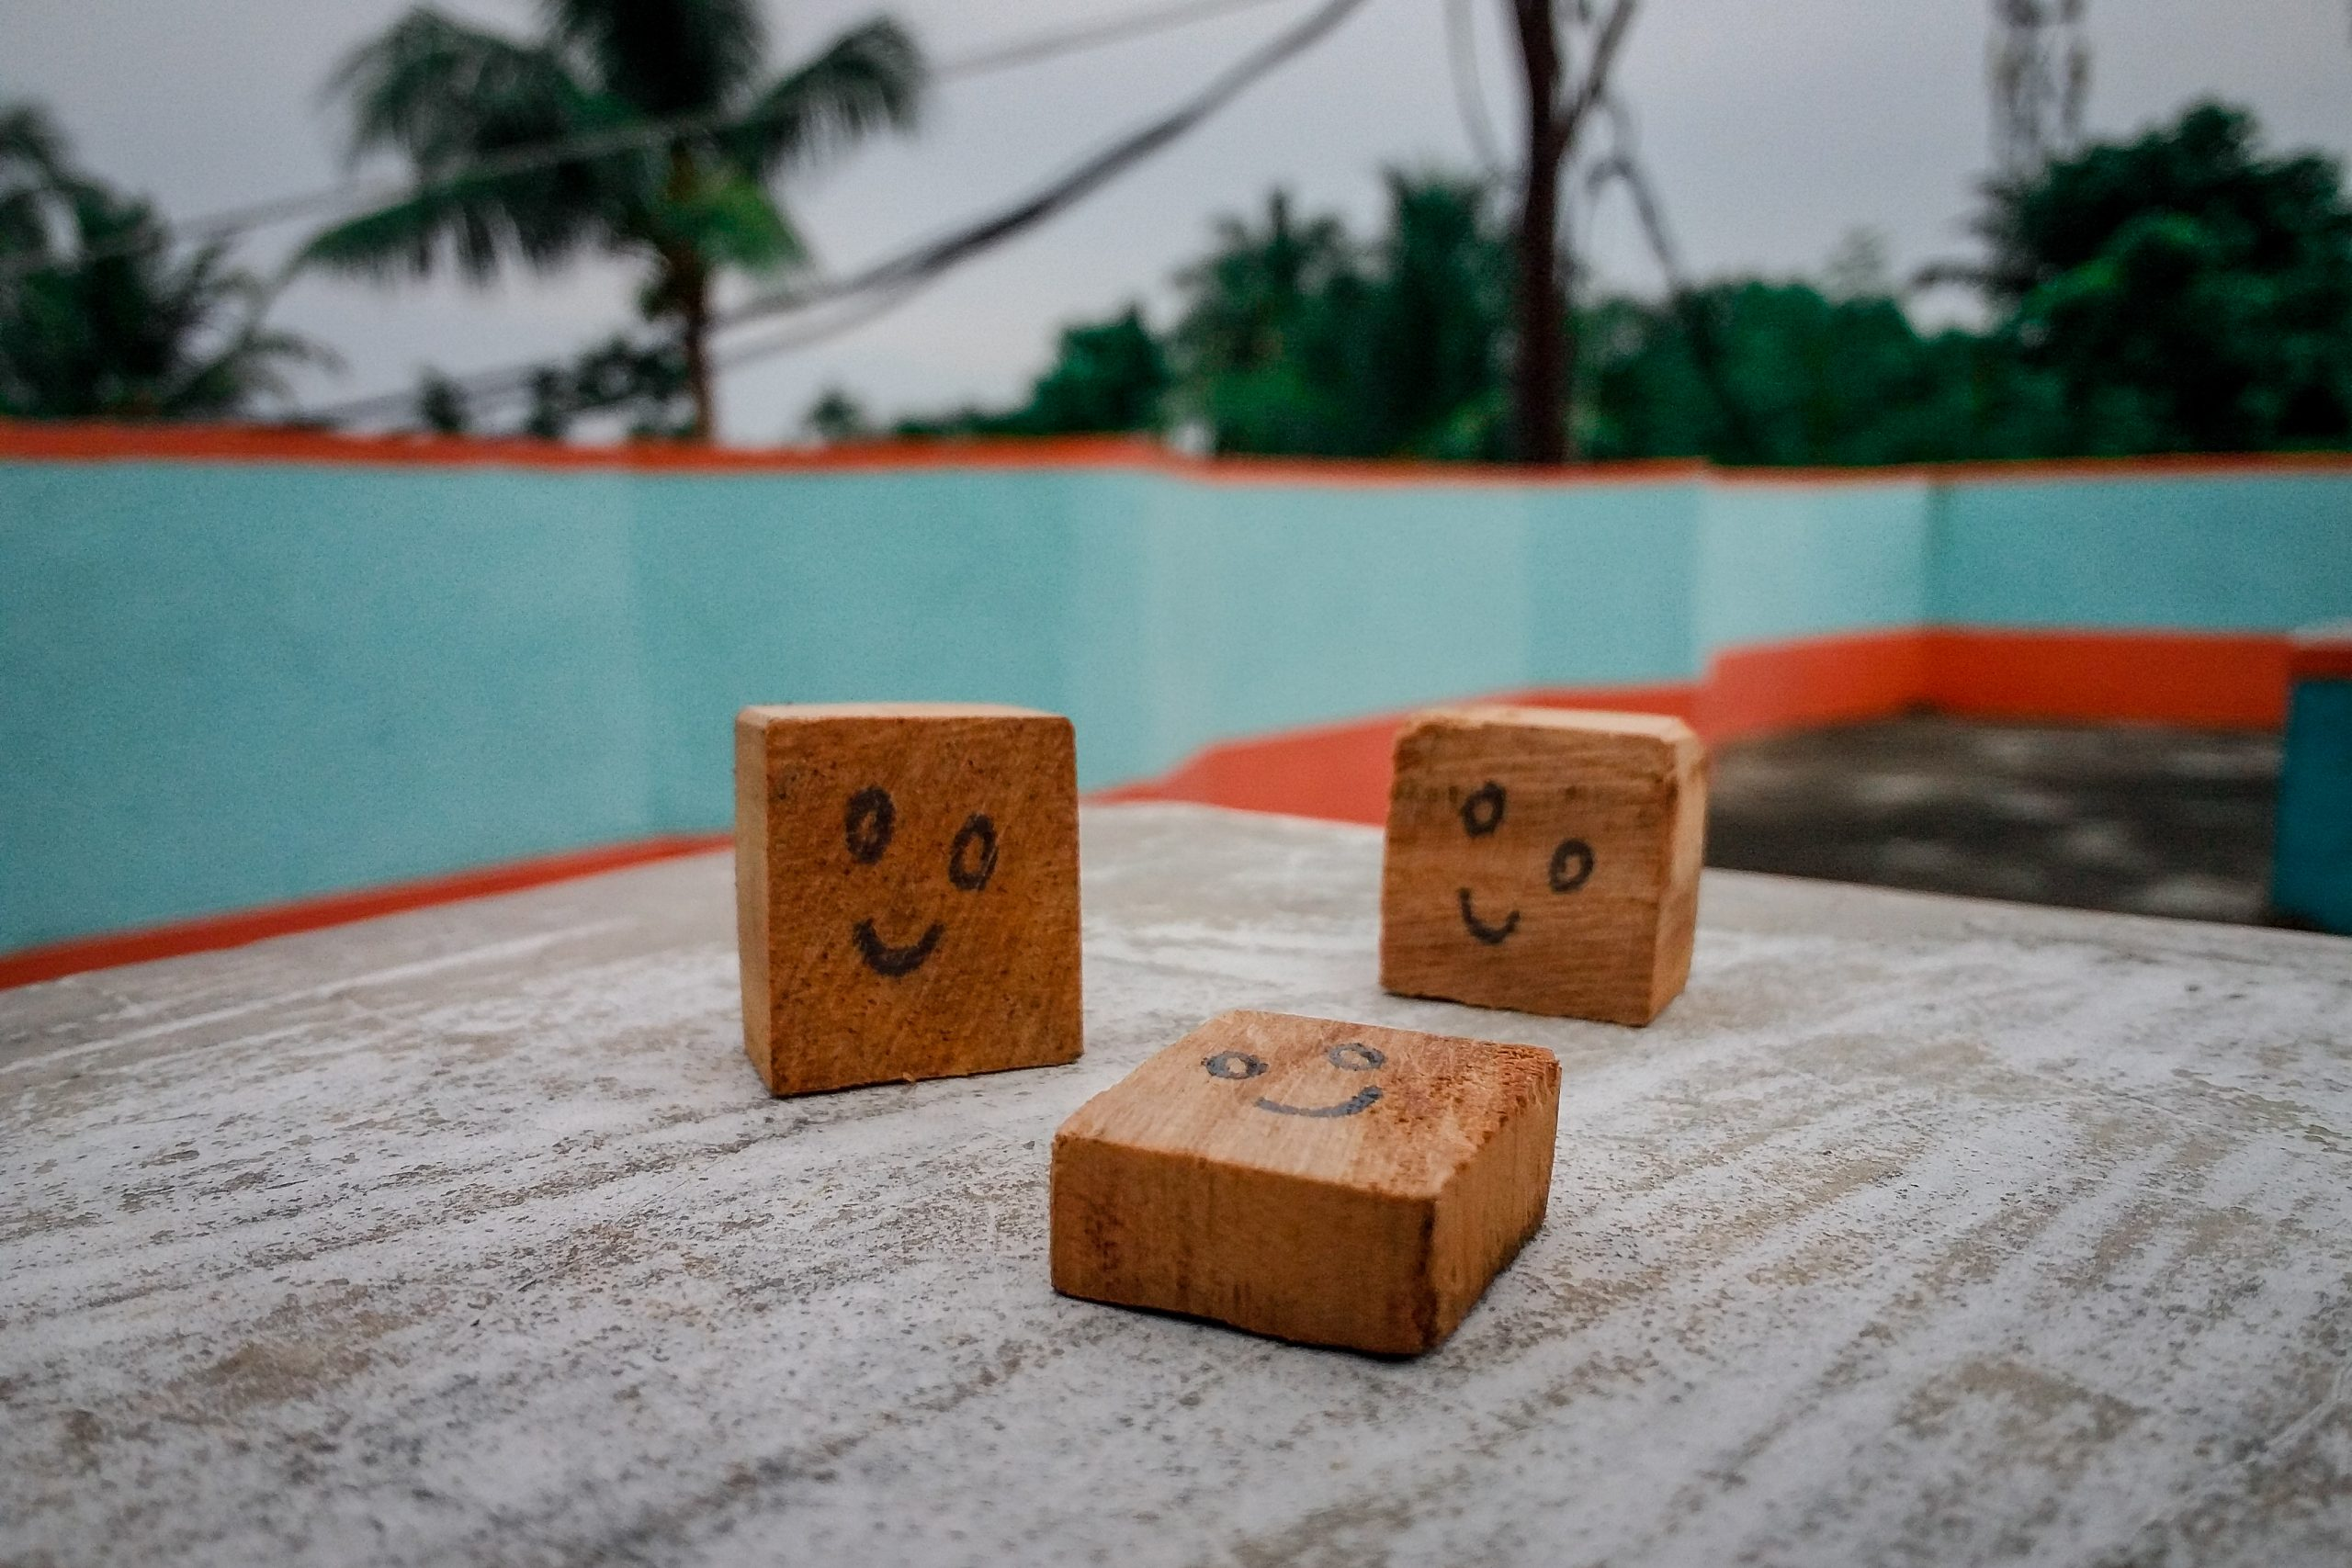 Smile drawn on wooden objects